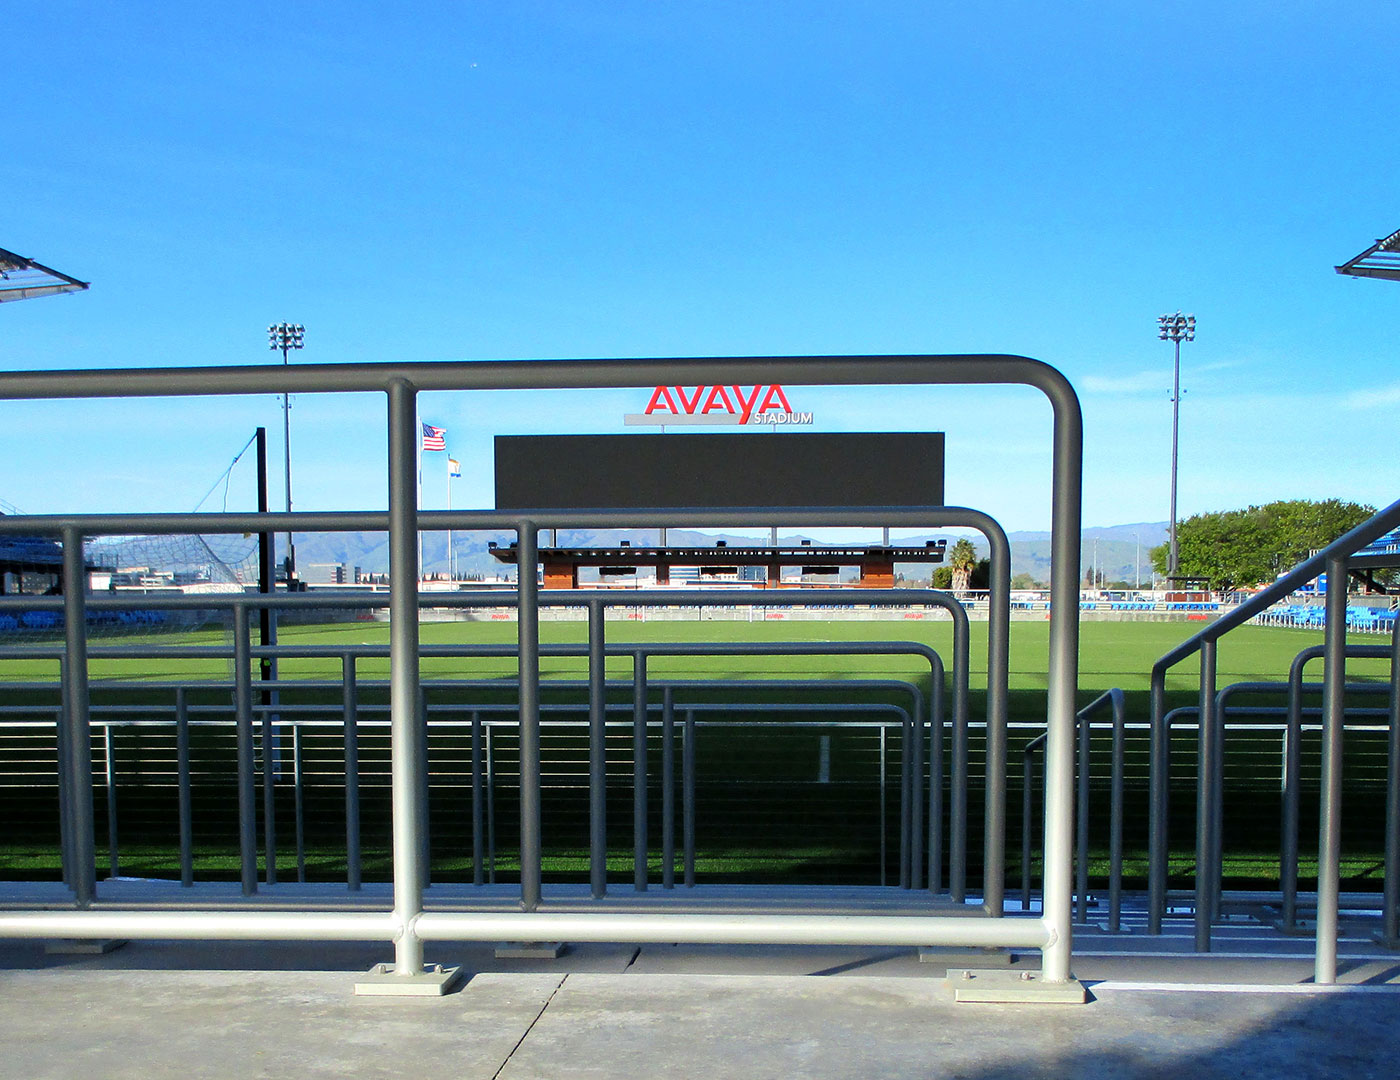 MLS Stadium aluminum Tube railing